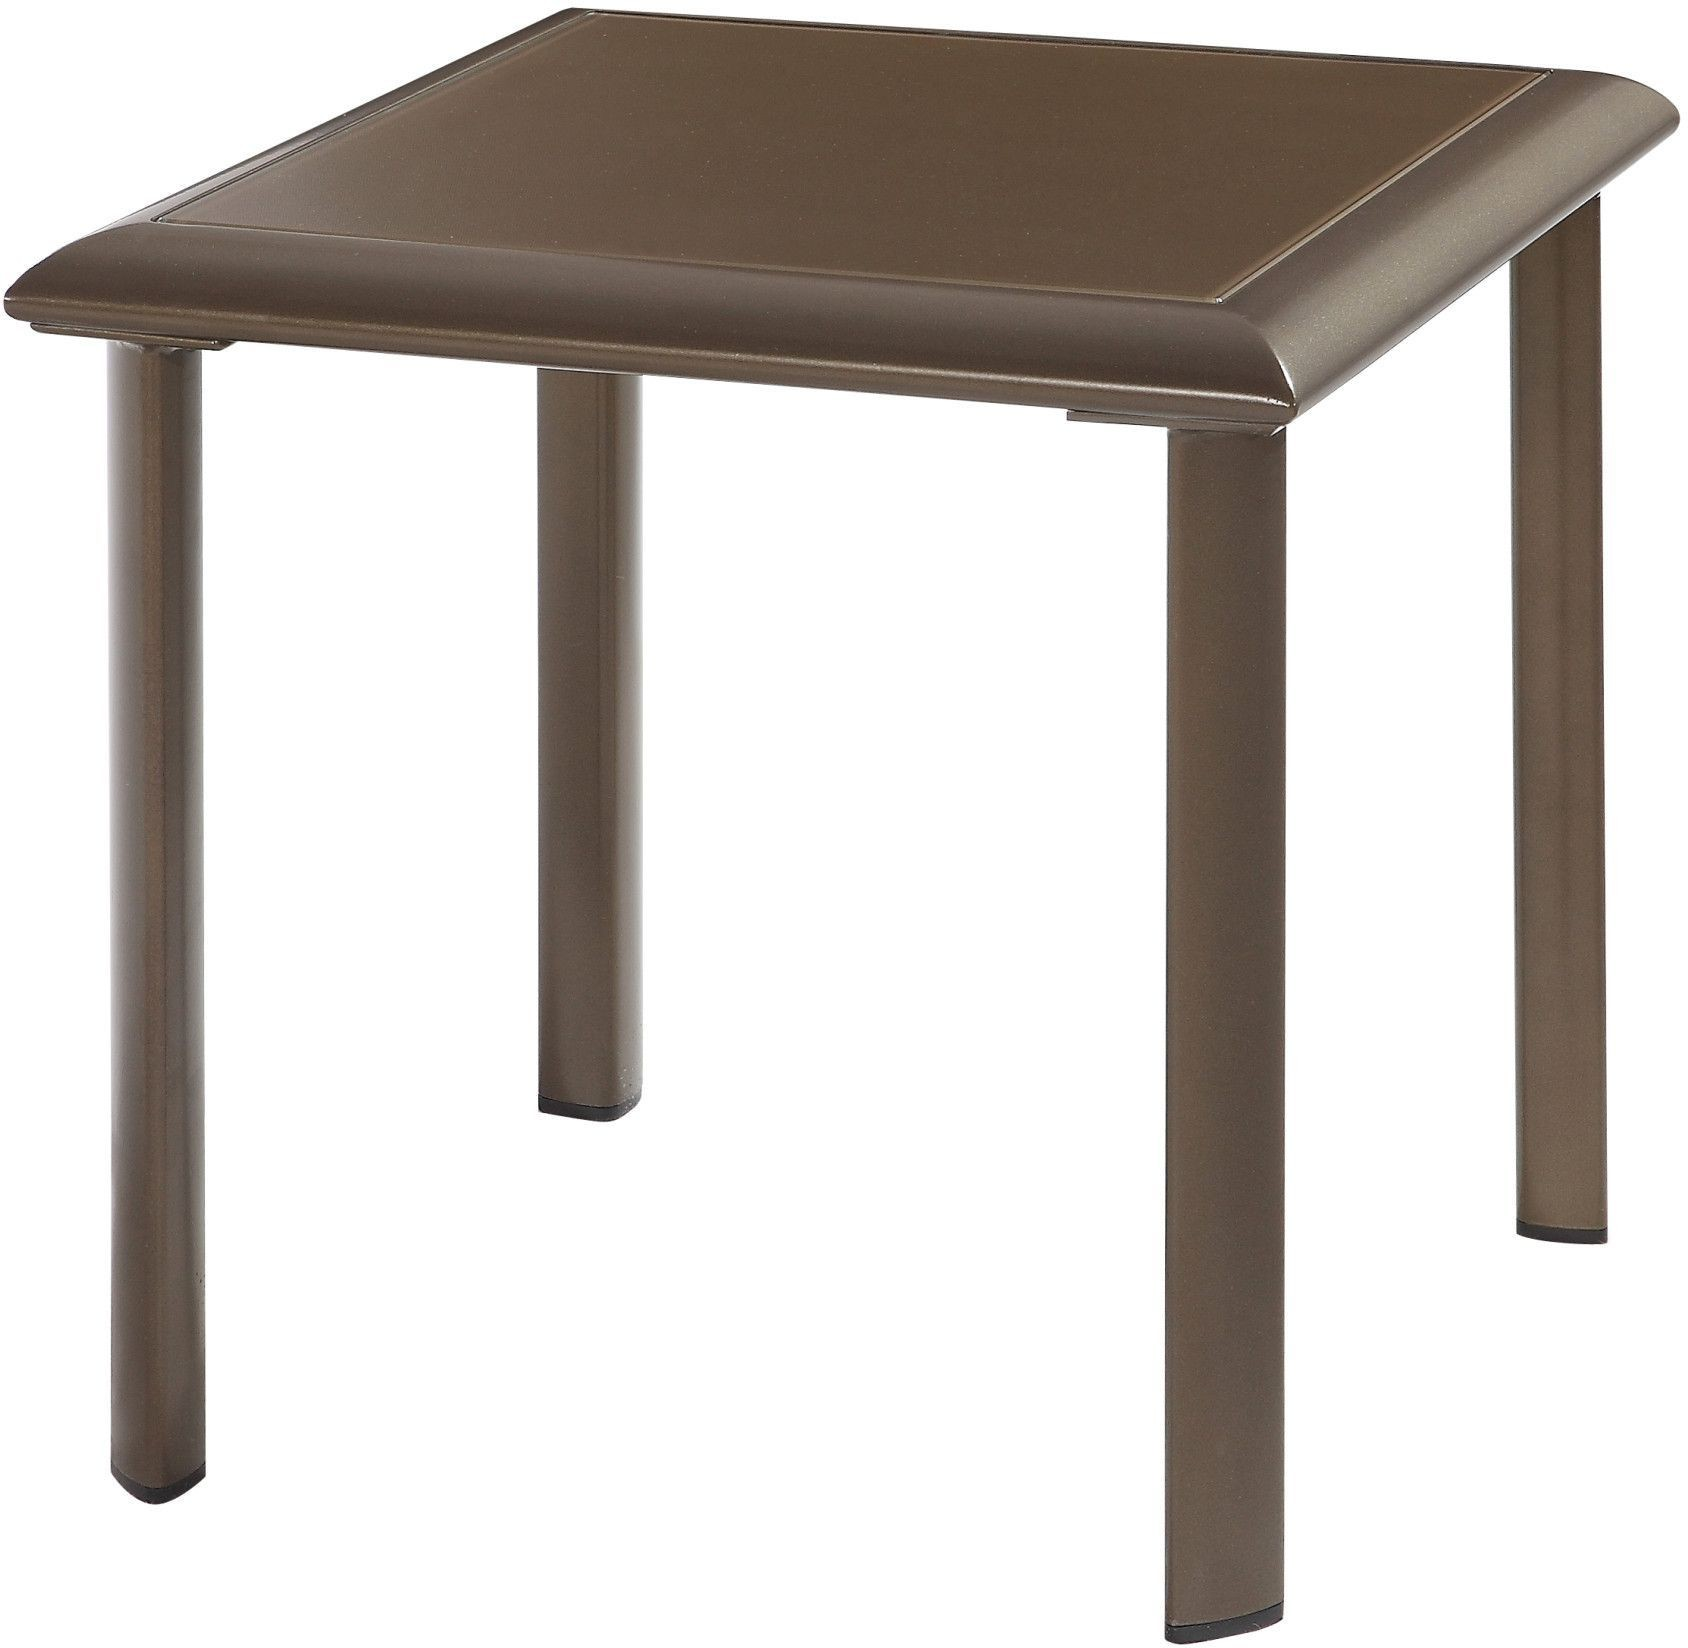 Square Glass End Tables Talon Bronze Square Glass Side Table From Emerald Home